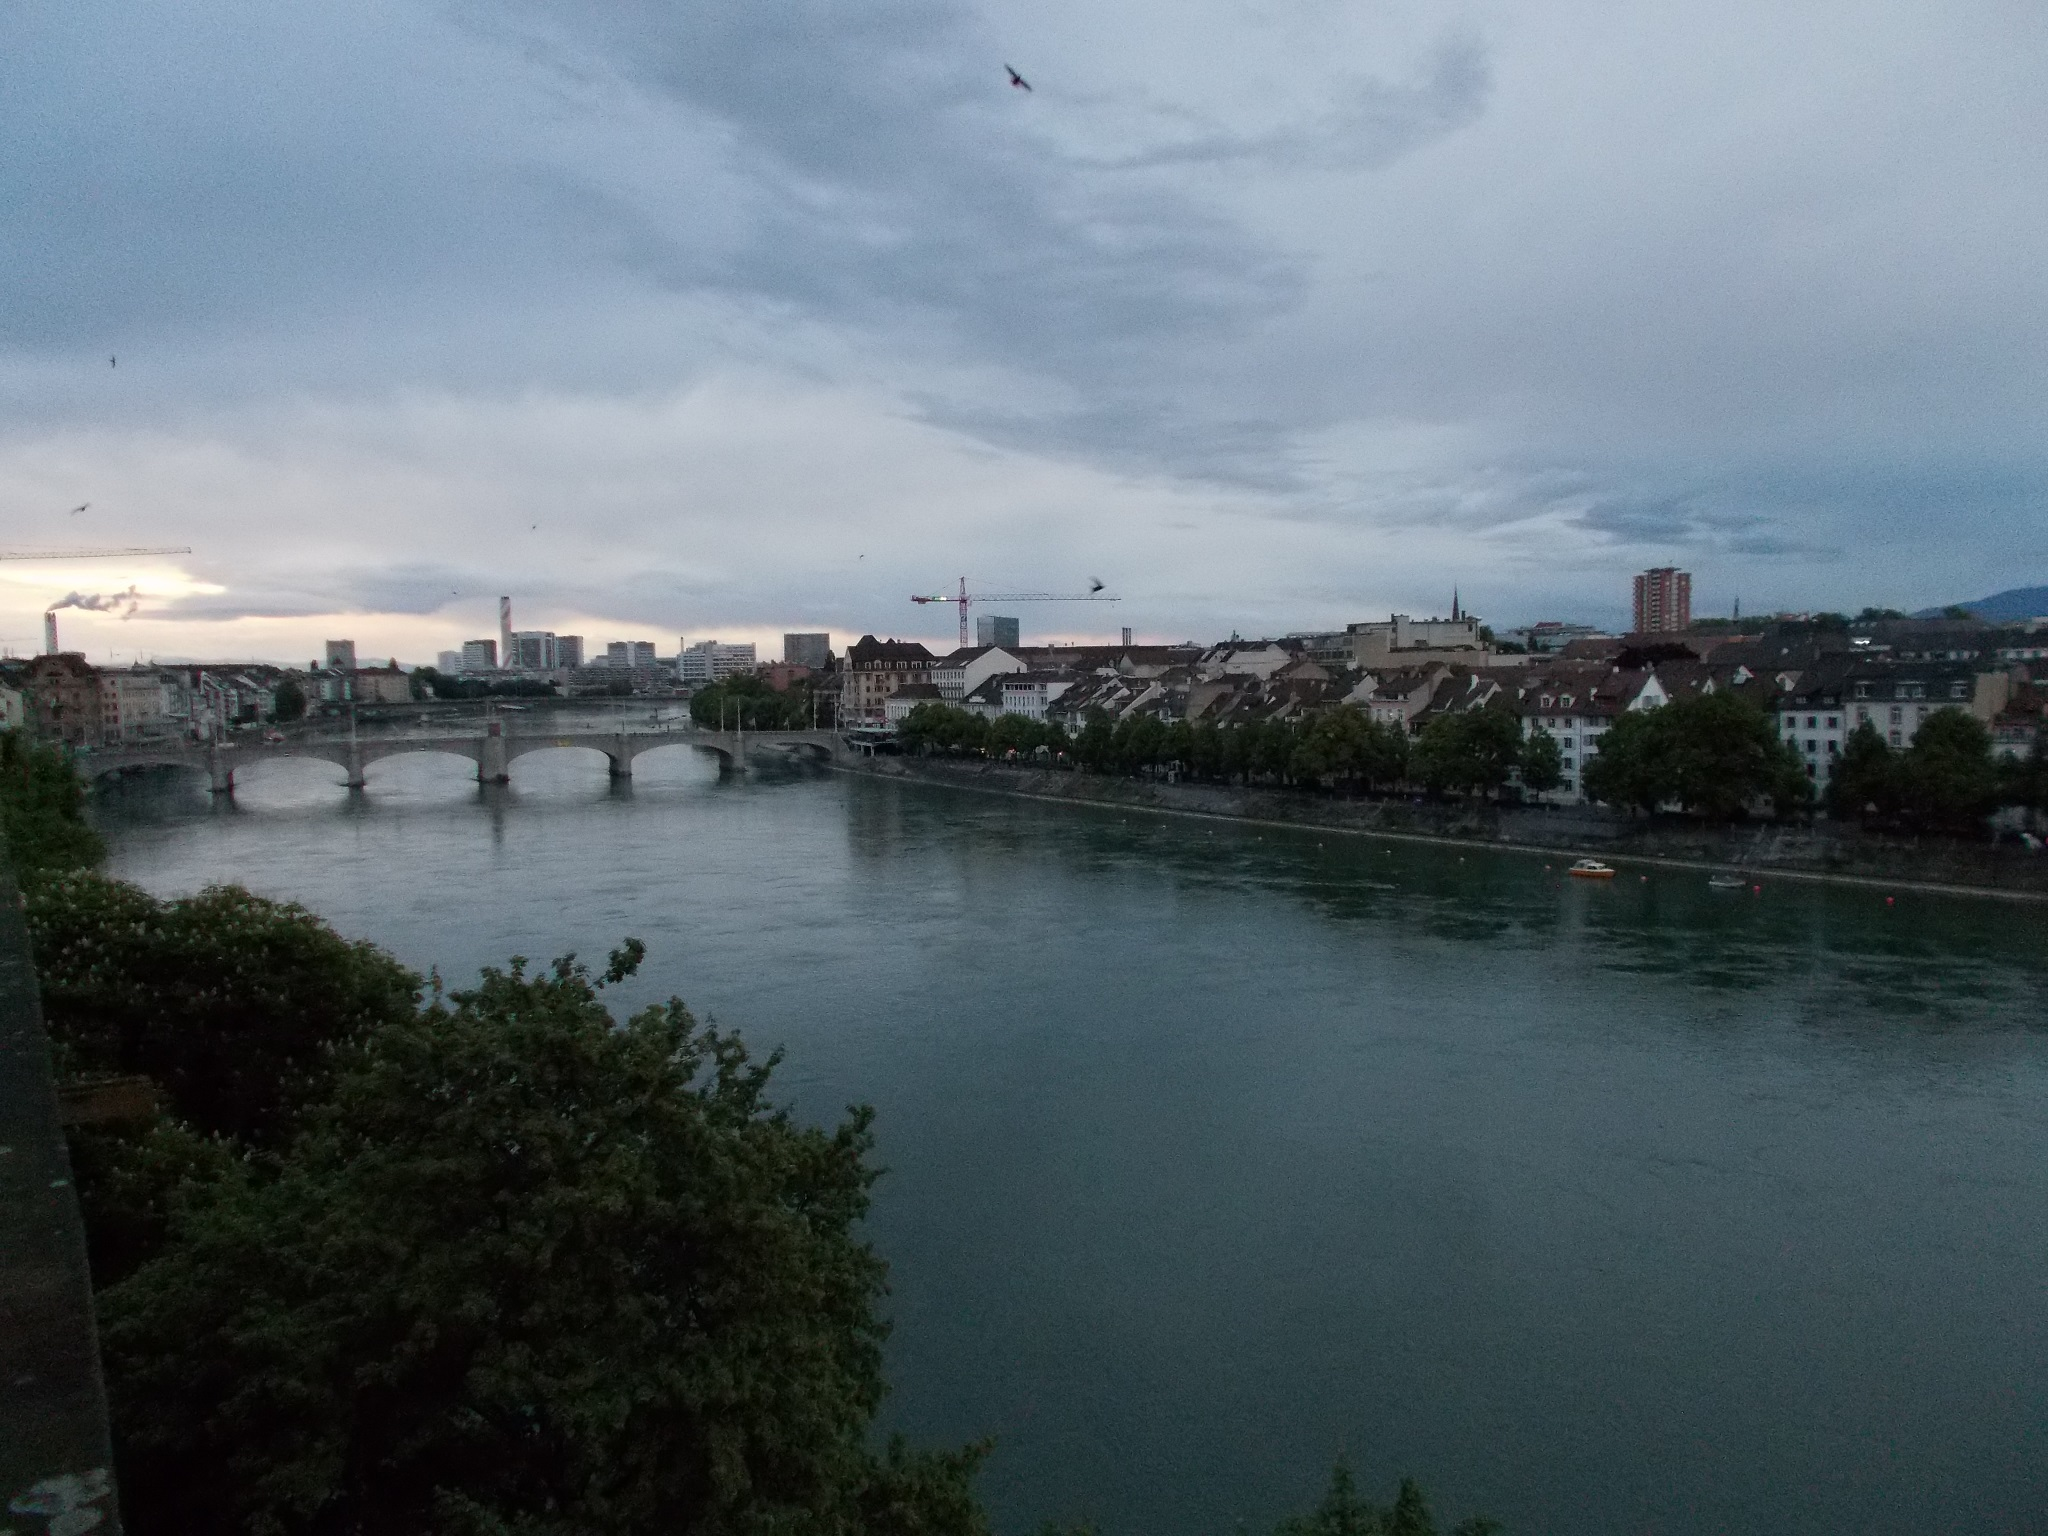 A wide river with high density housing along its banks. A bridge is visible in the distance and clouds fill the skies above.